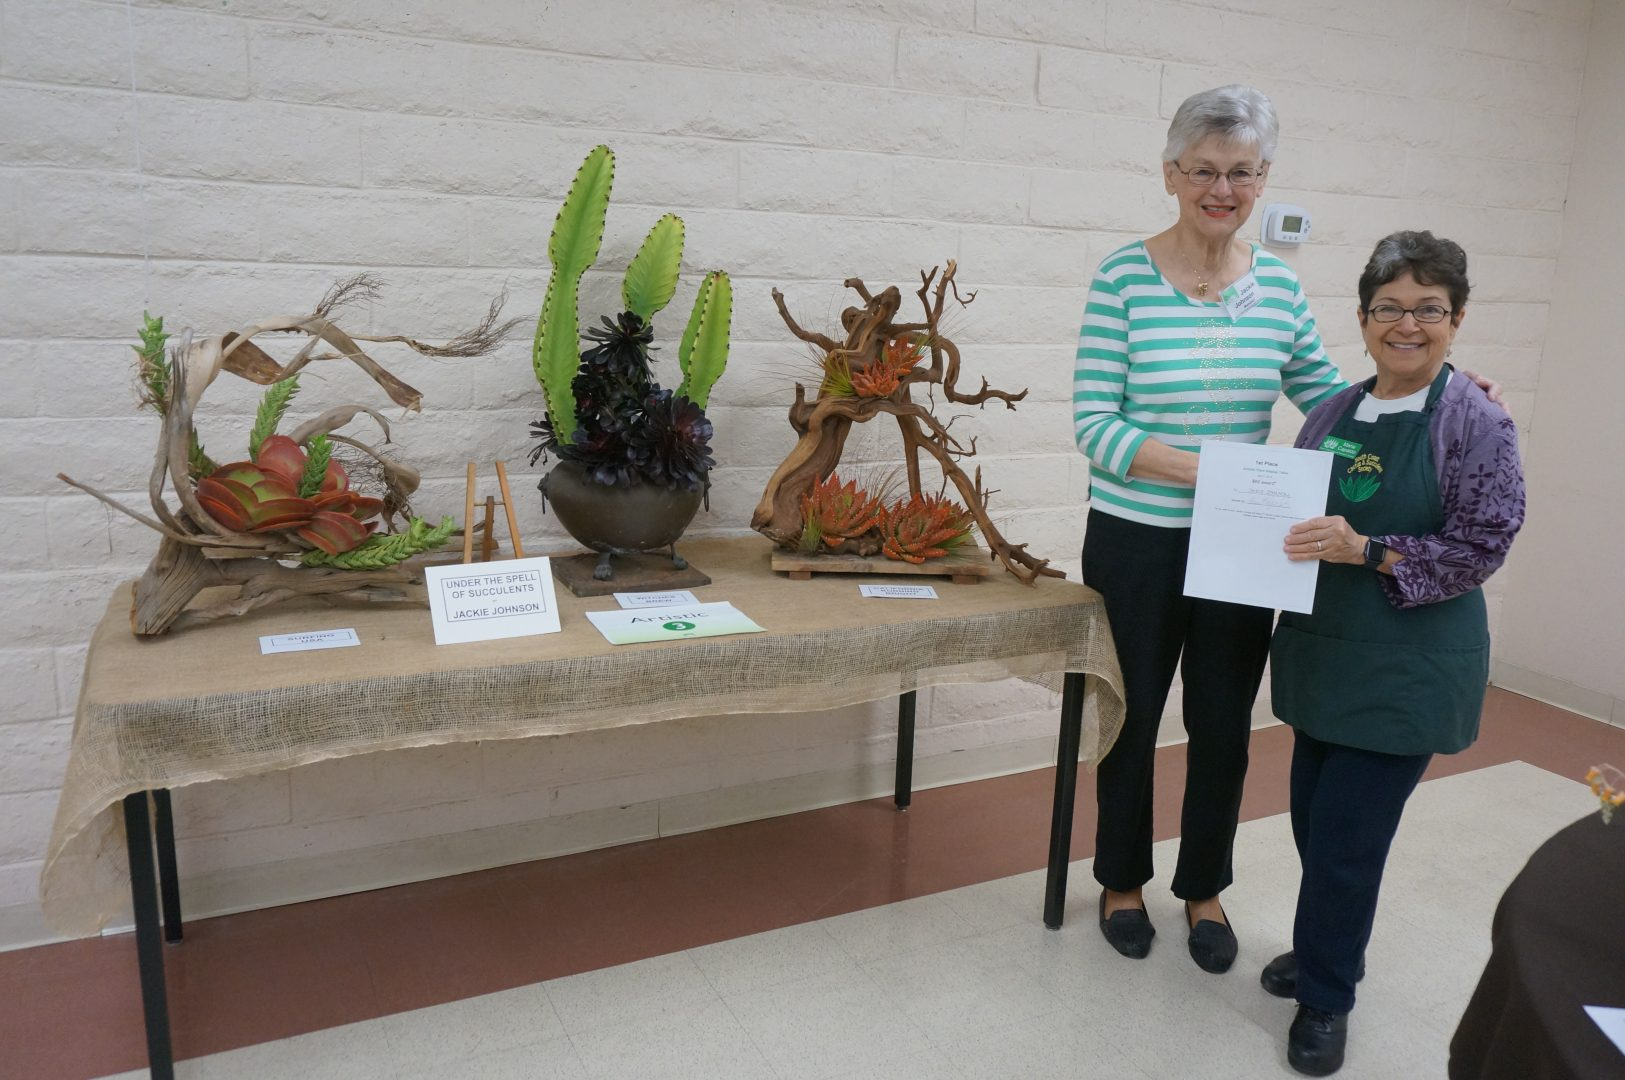 Jackie Johnson - 1st Prize Artistic Table